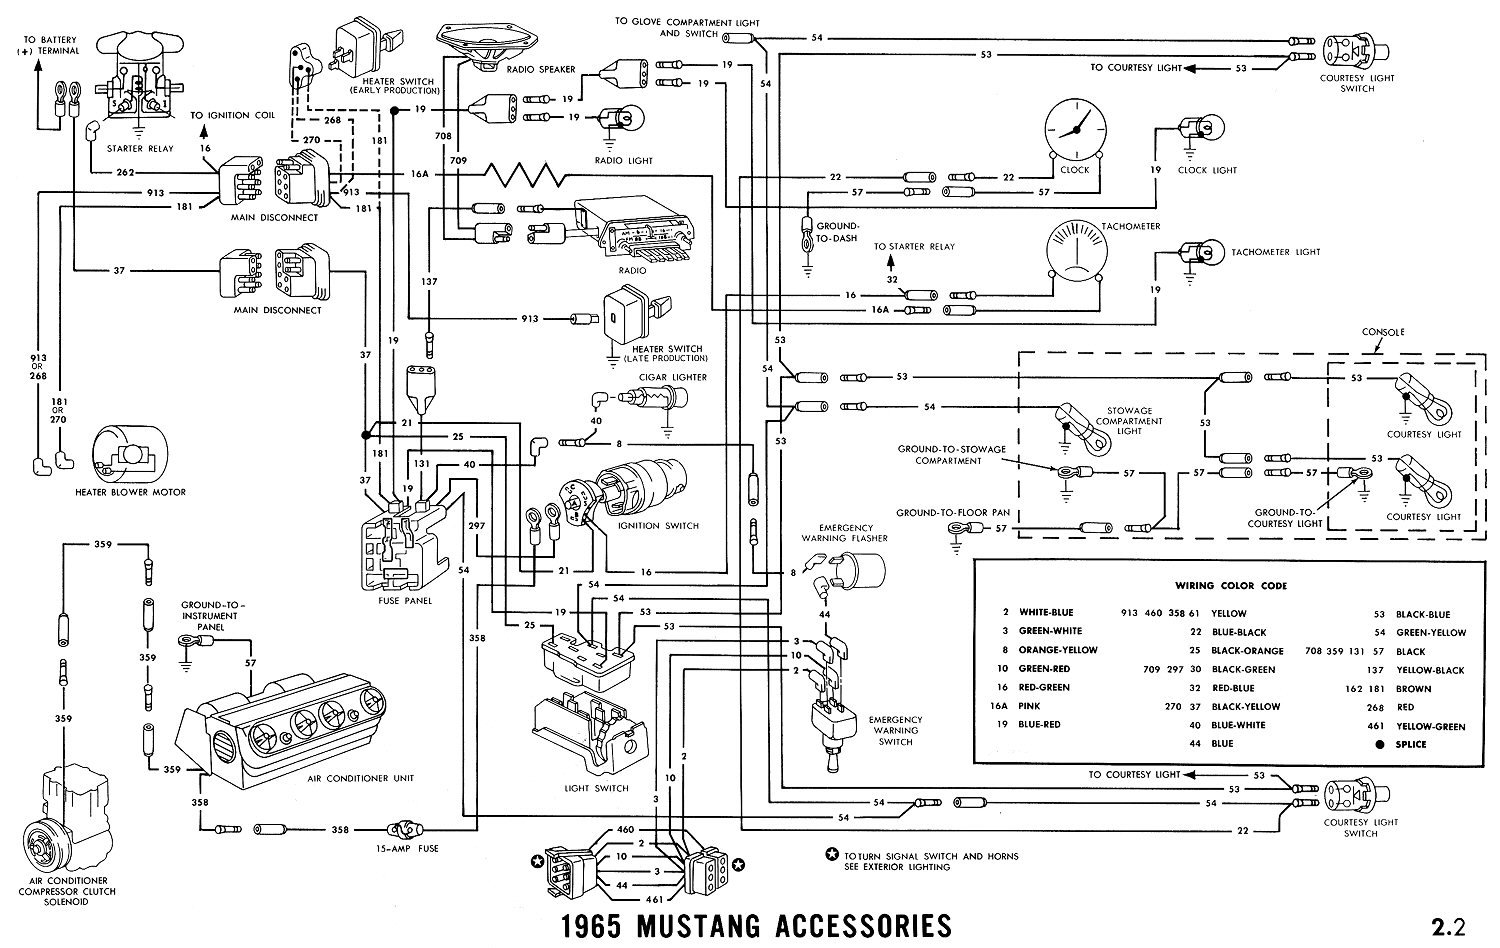 Ford Mustang Wiring Diagram Together With 95 Mustang Wiring Diagram